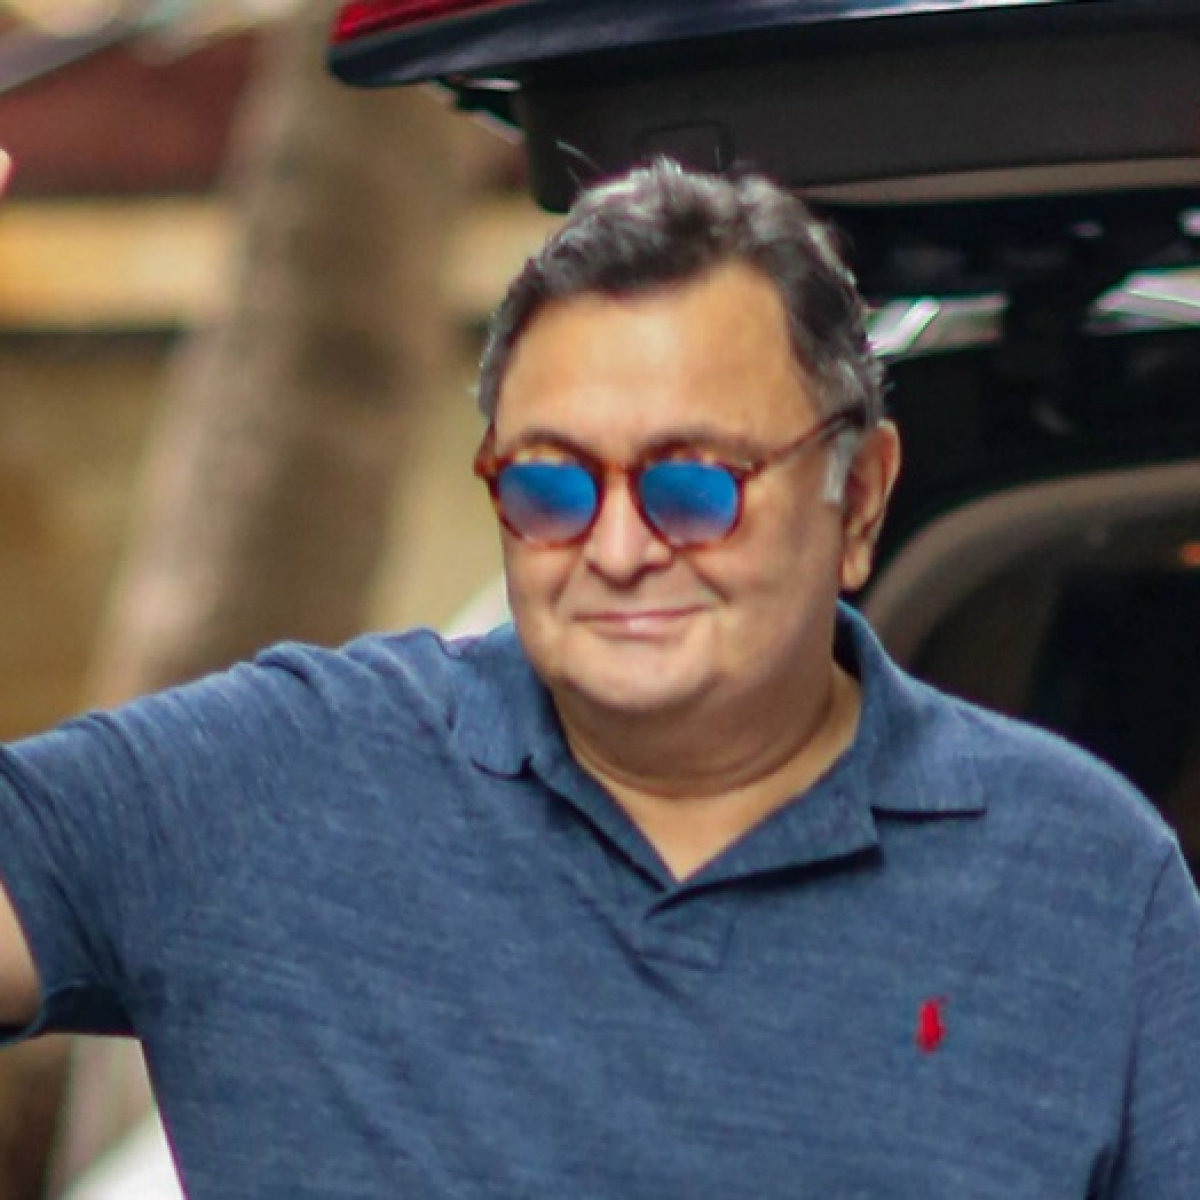 PM Modi, Rahul Gandhi, Mamata Banerjee, political leaders across party lines pay tributes to Rishi Kapoor